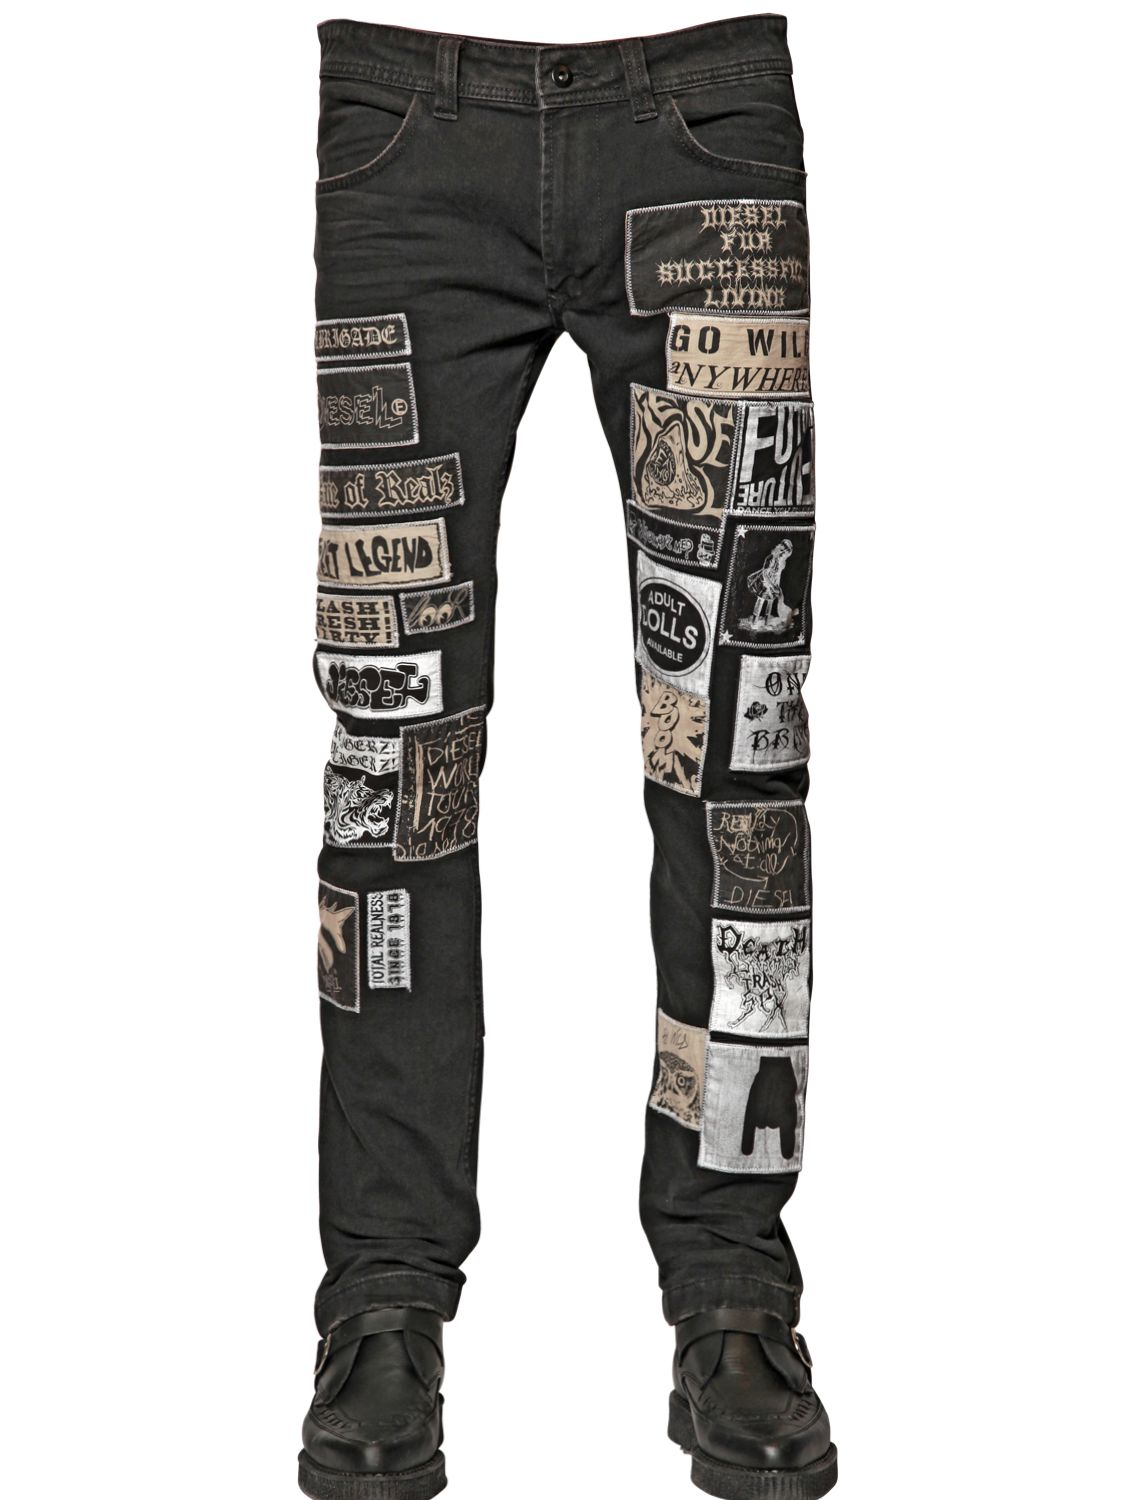 Lyst - DIESEL 17Cm Patches On Cotton Denim Jeans in Black ...